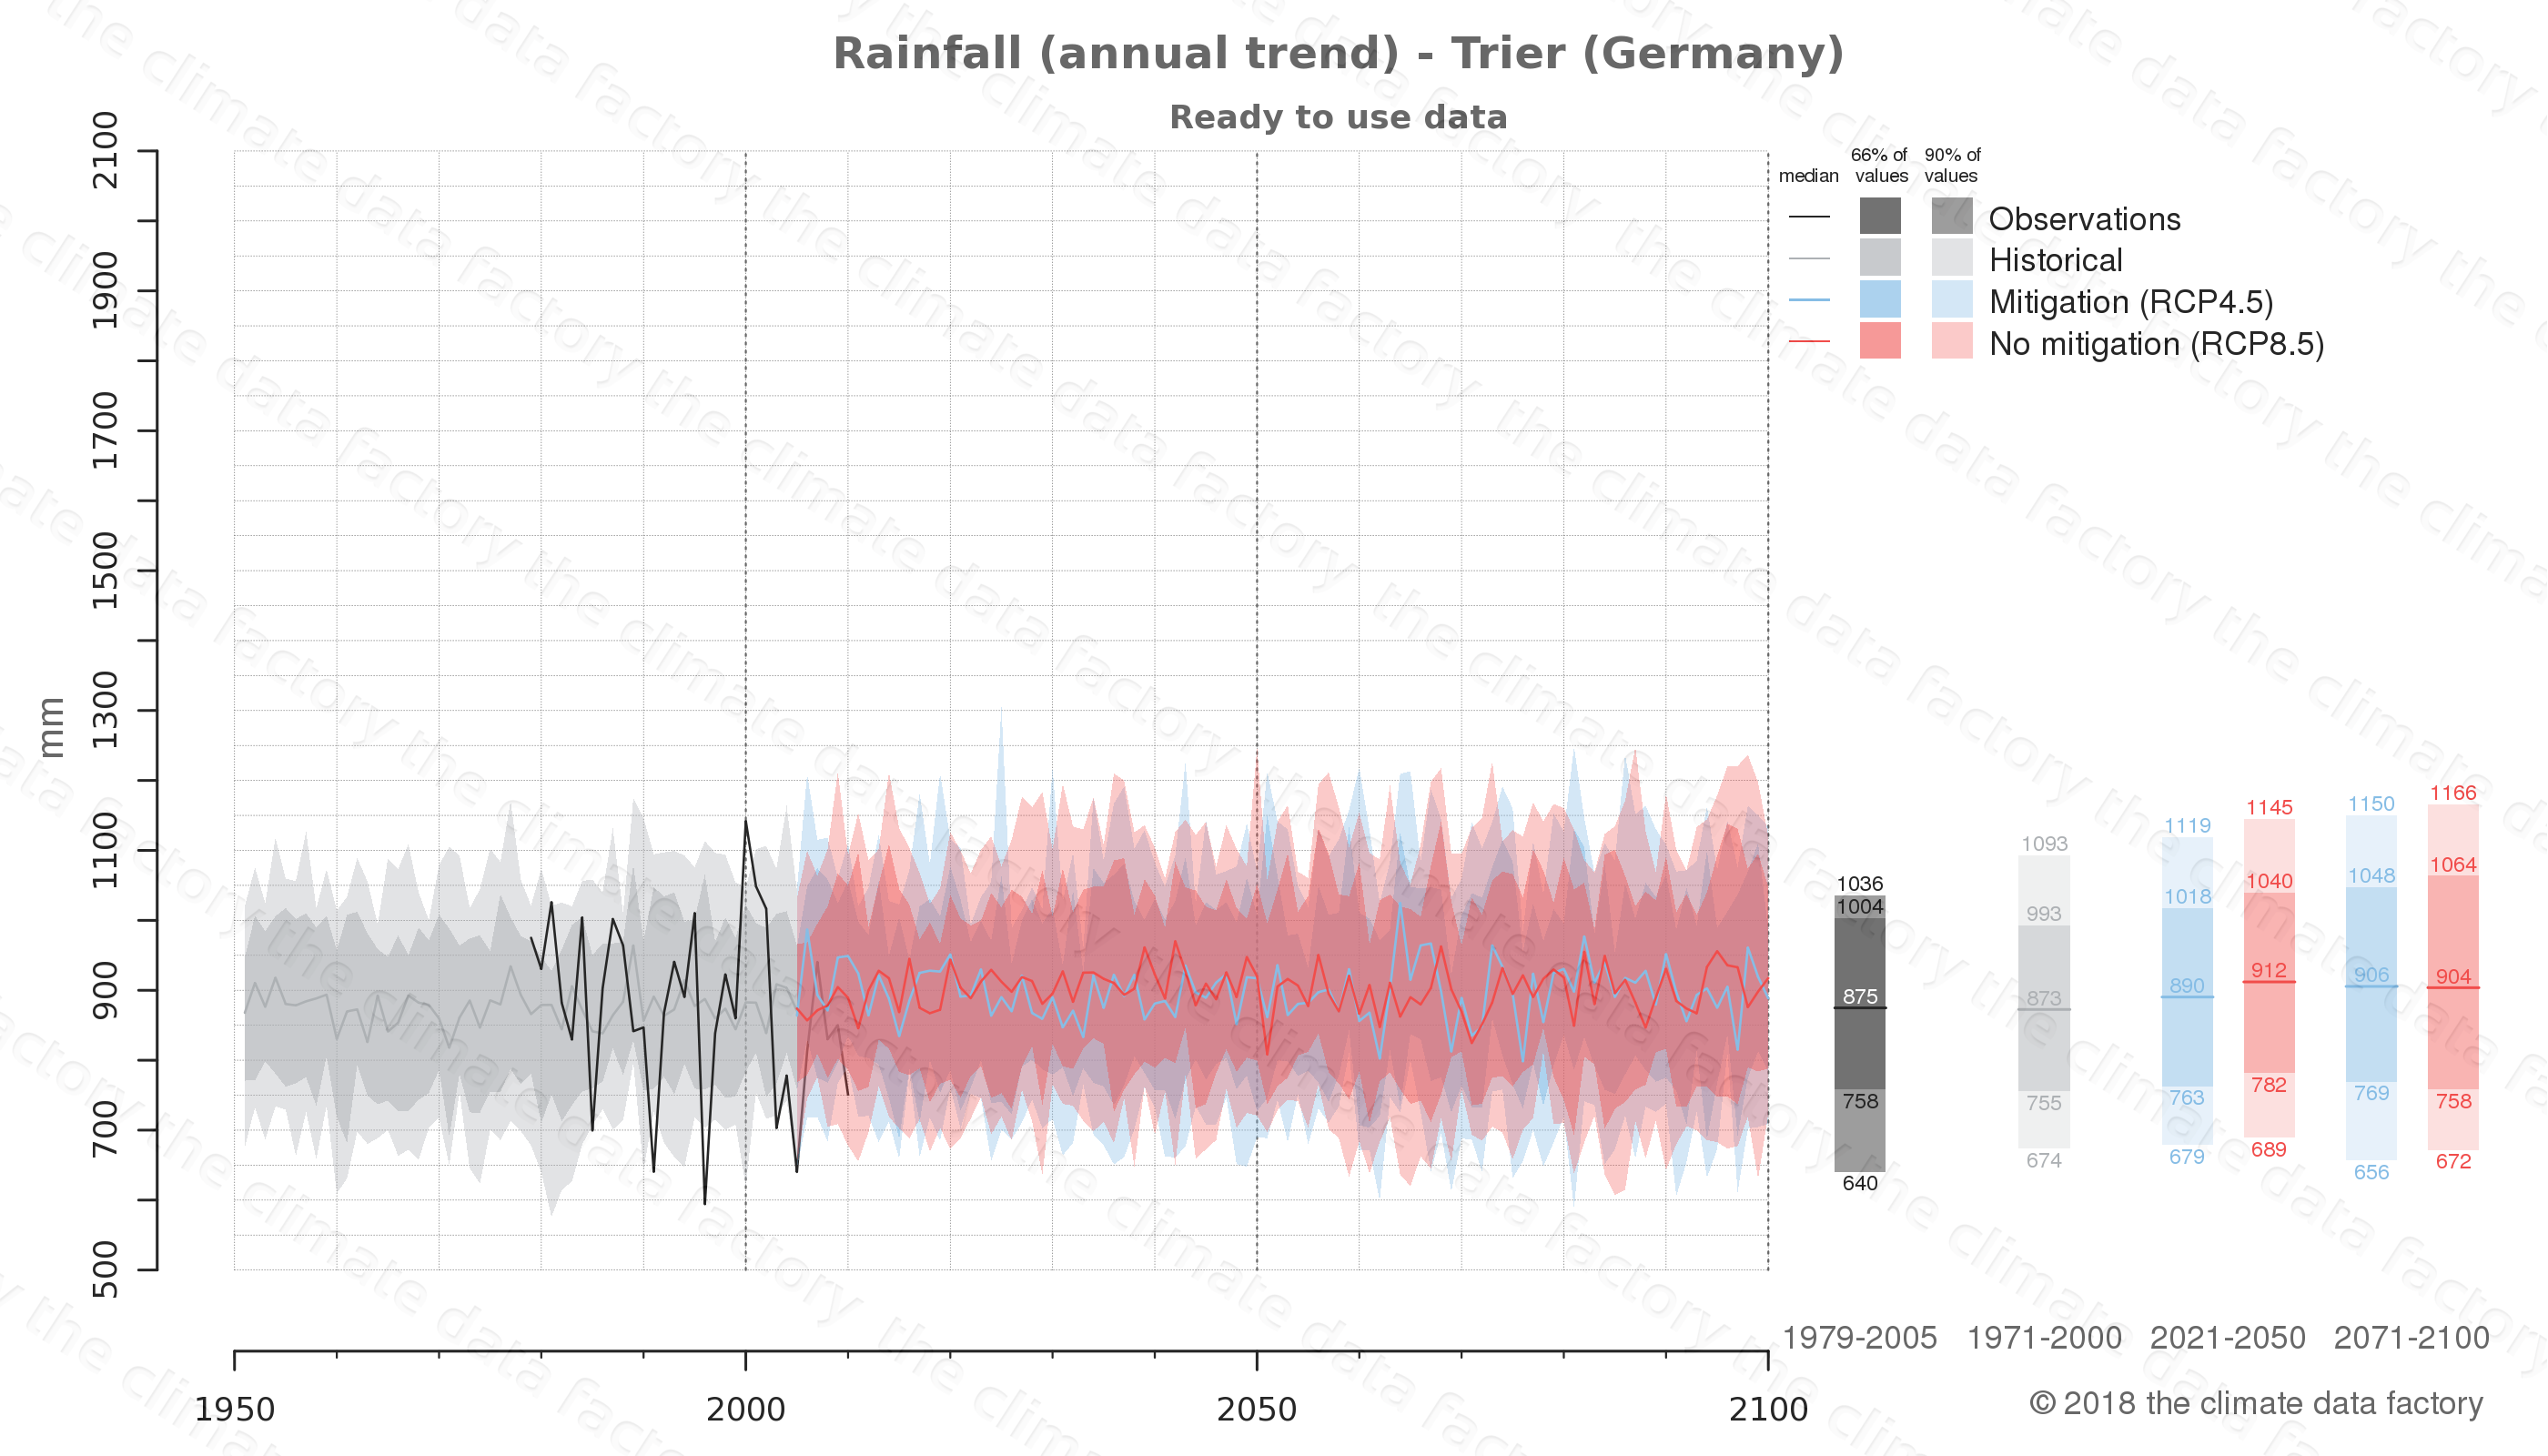 climate change data policy adaptation climate graph city data rainfall trier germany